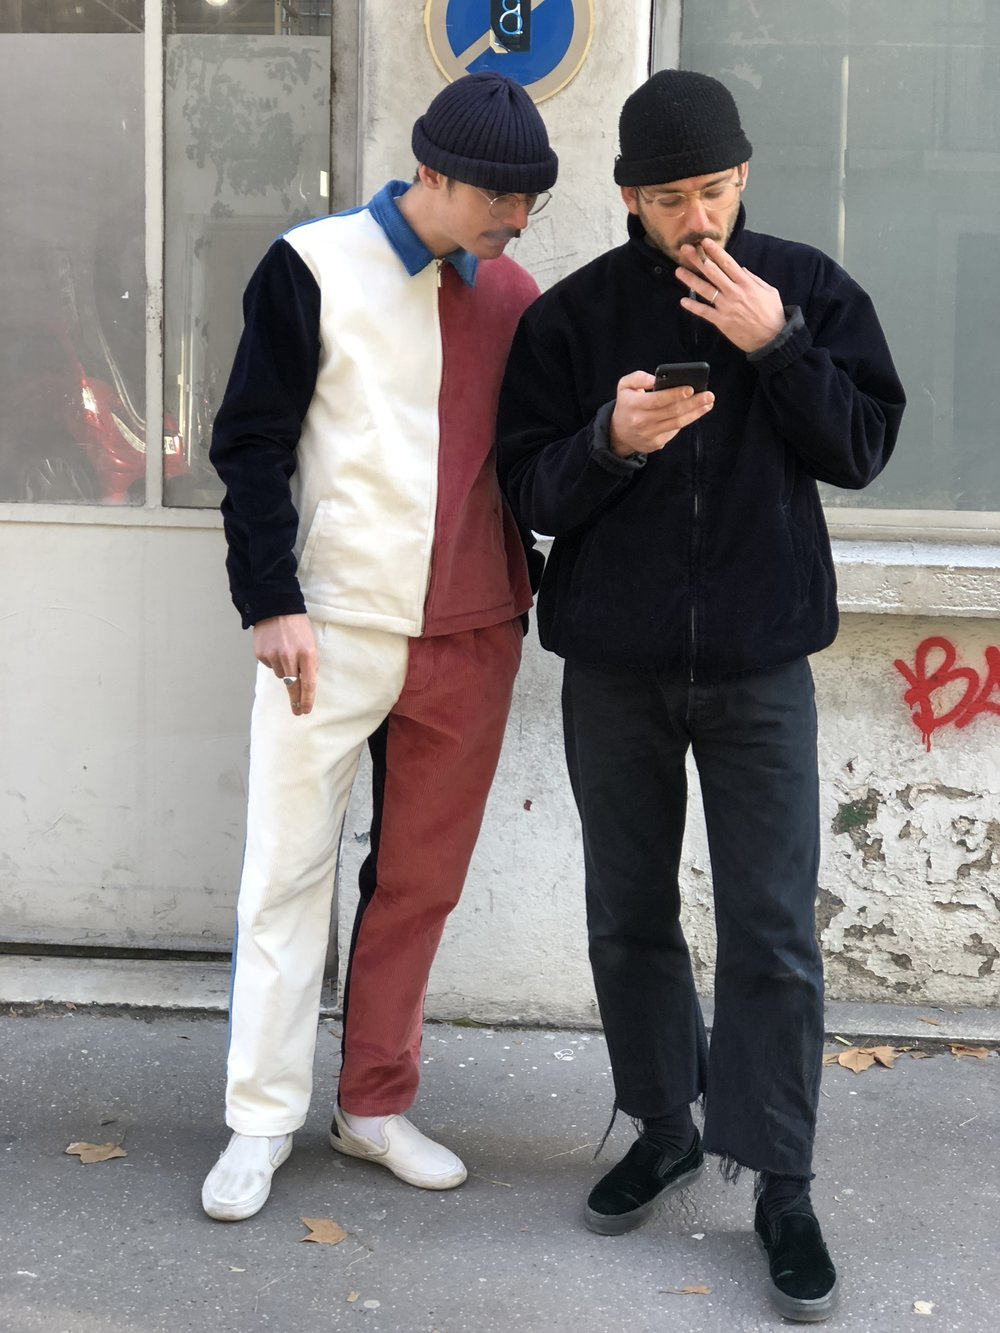 / - Lyon-FR: Thibaut & Quentin looking at skate videos while we were shooting our look-book. I like both guys attitude a lot, not super relevant on this photo but still like them a lot.